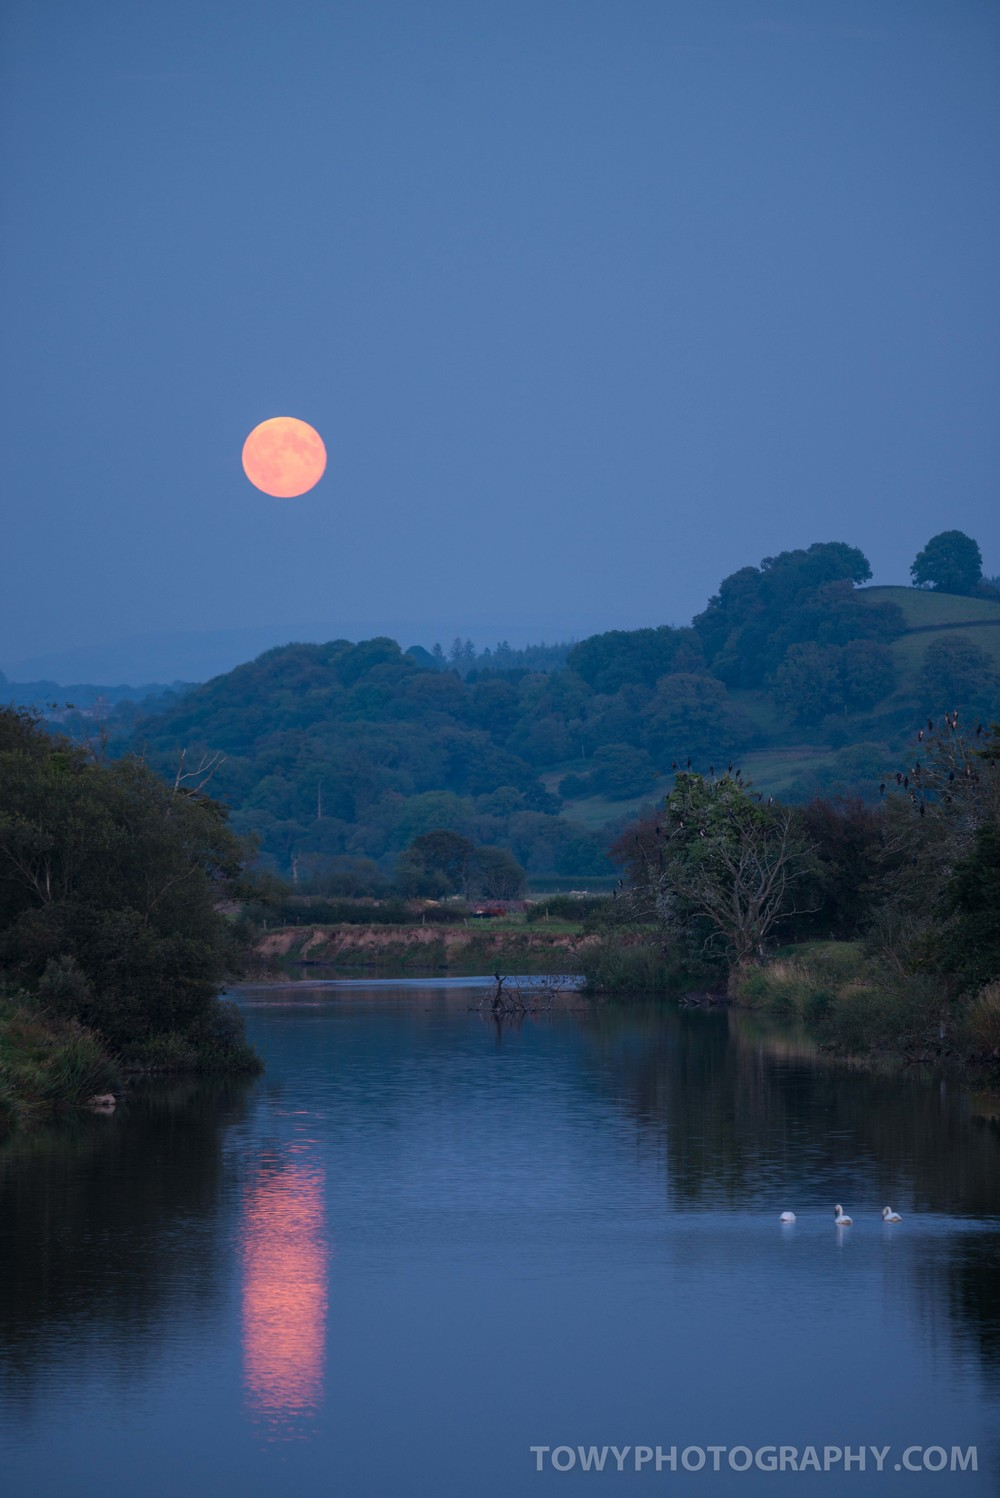 Beautiful reflection from the Moon on the Towy